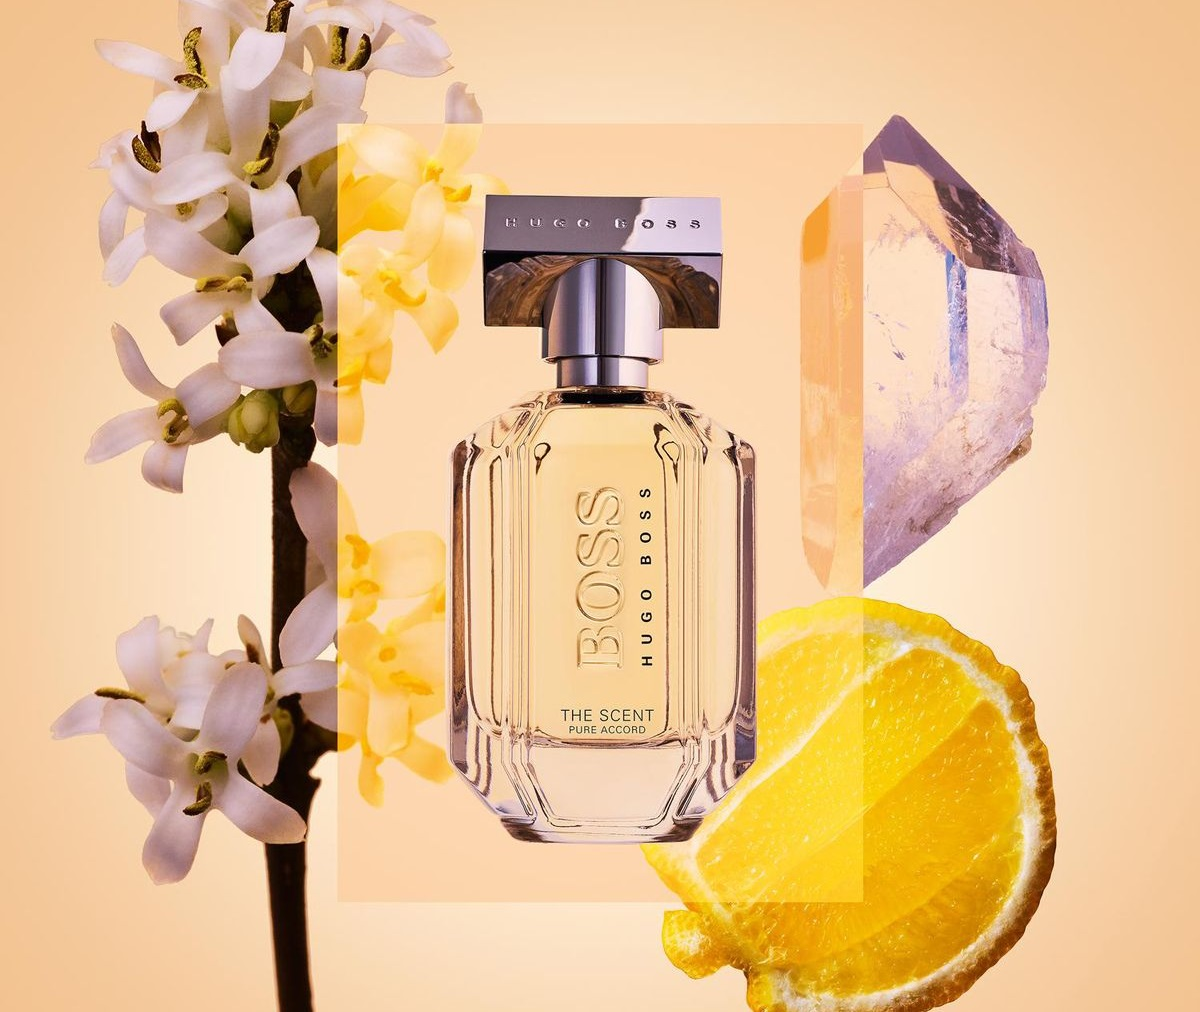 Hugo Boss The Scent Pure Accord for Her opinie